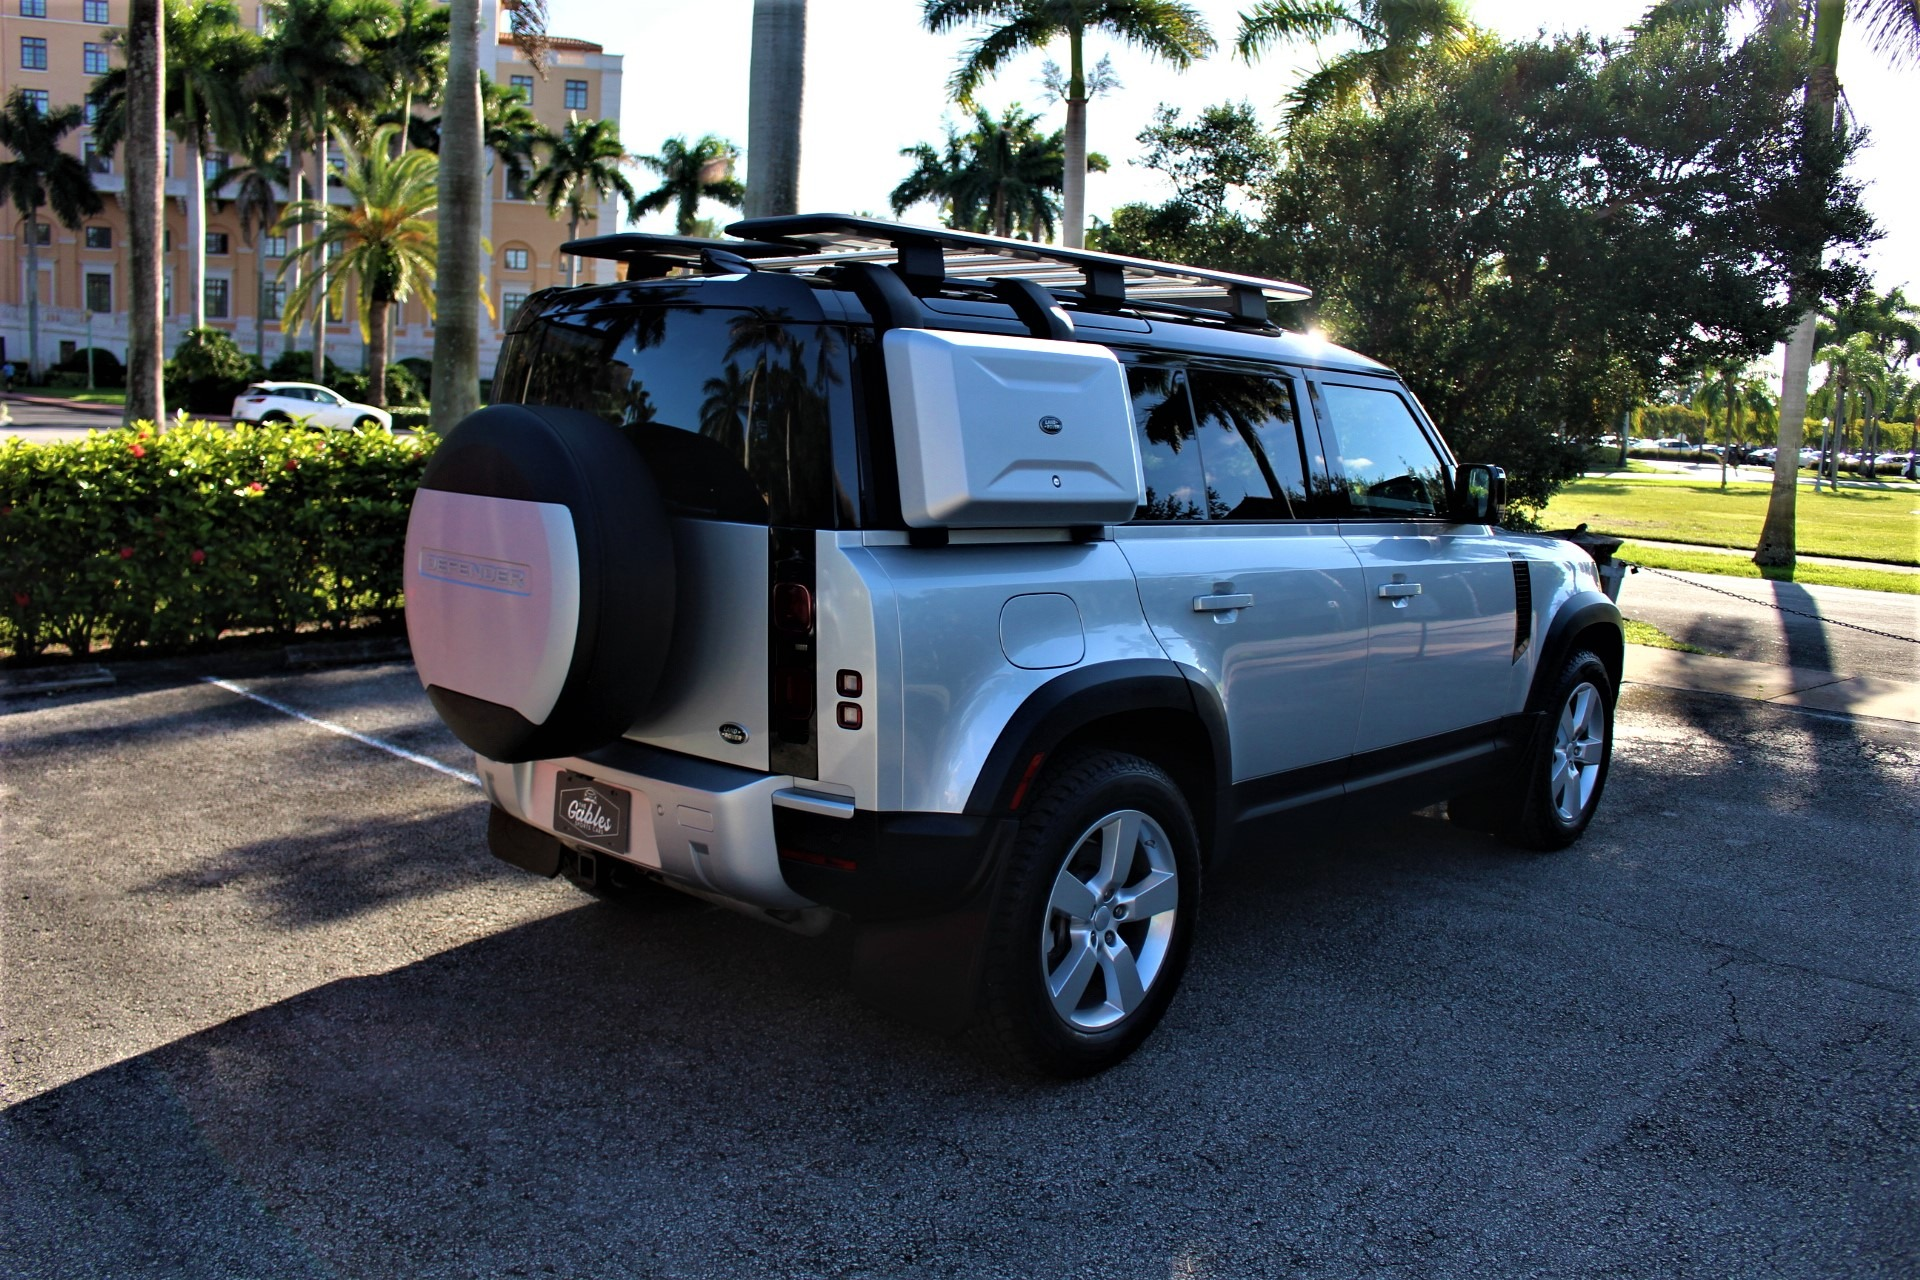 Used 2020 Land Rover Defender 110 HSE FIRST EDITION for sale $93,850 at The Gables Sports Cars in Miami FL 33146 3